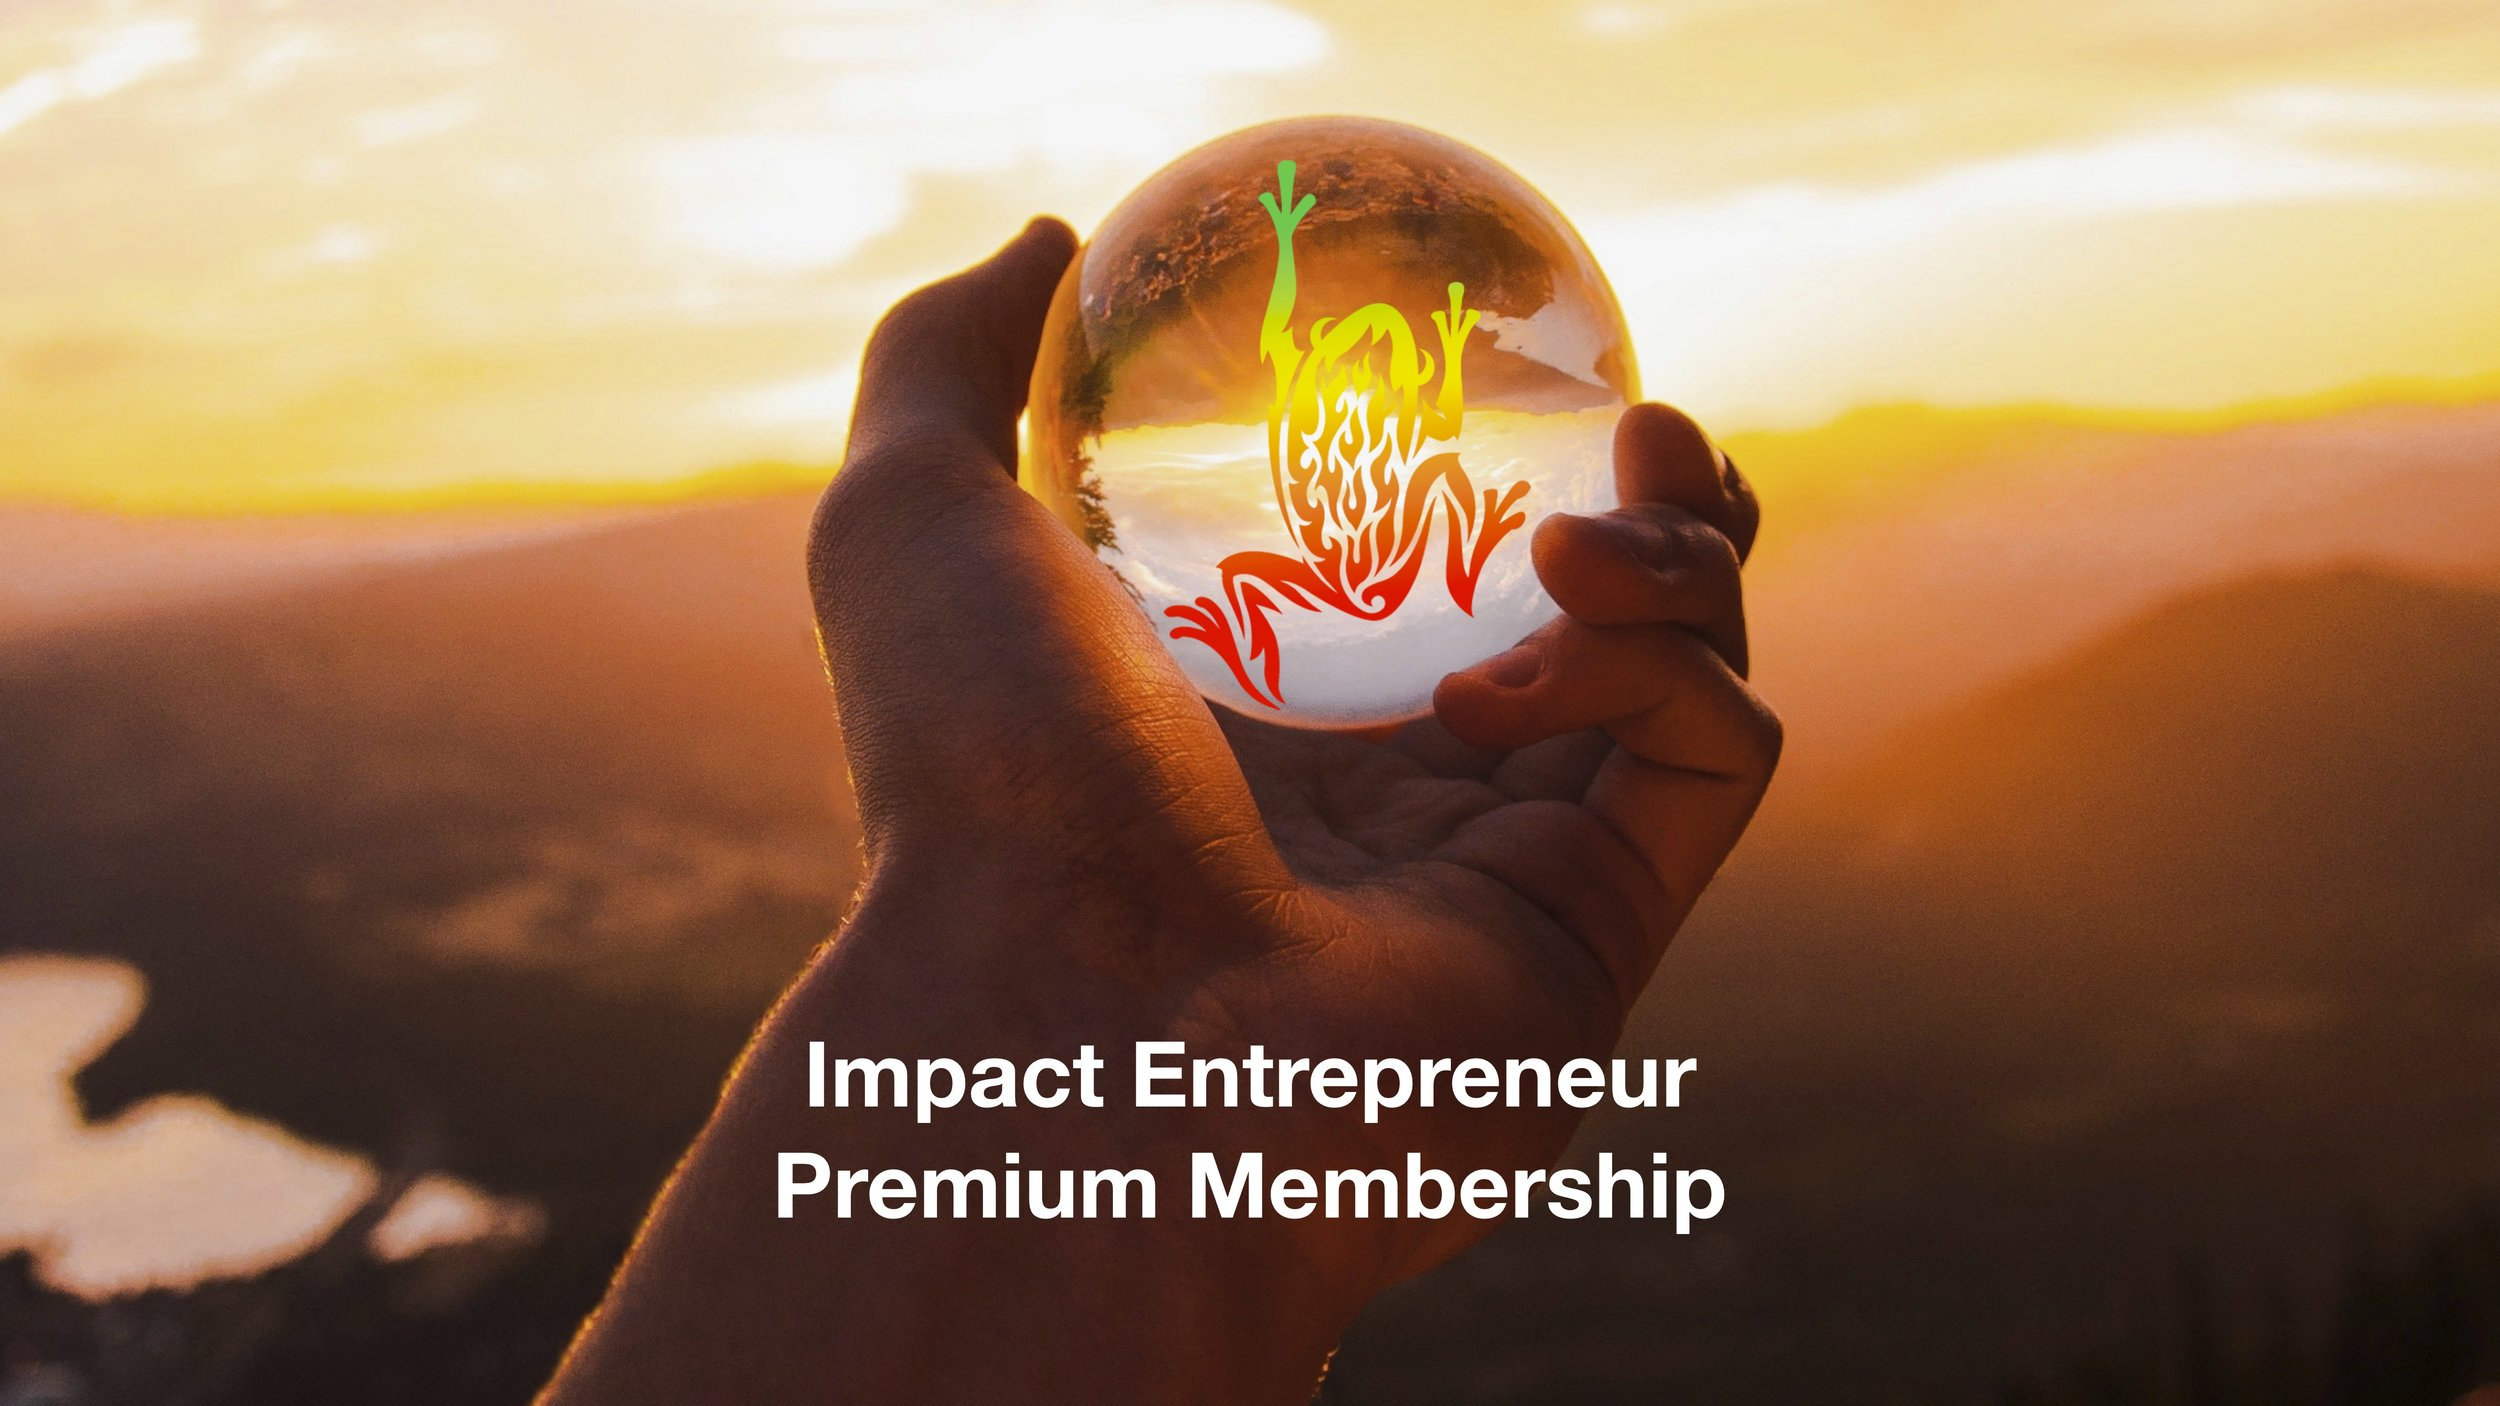 Join our Founding Circle of Premium Members